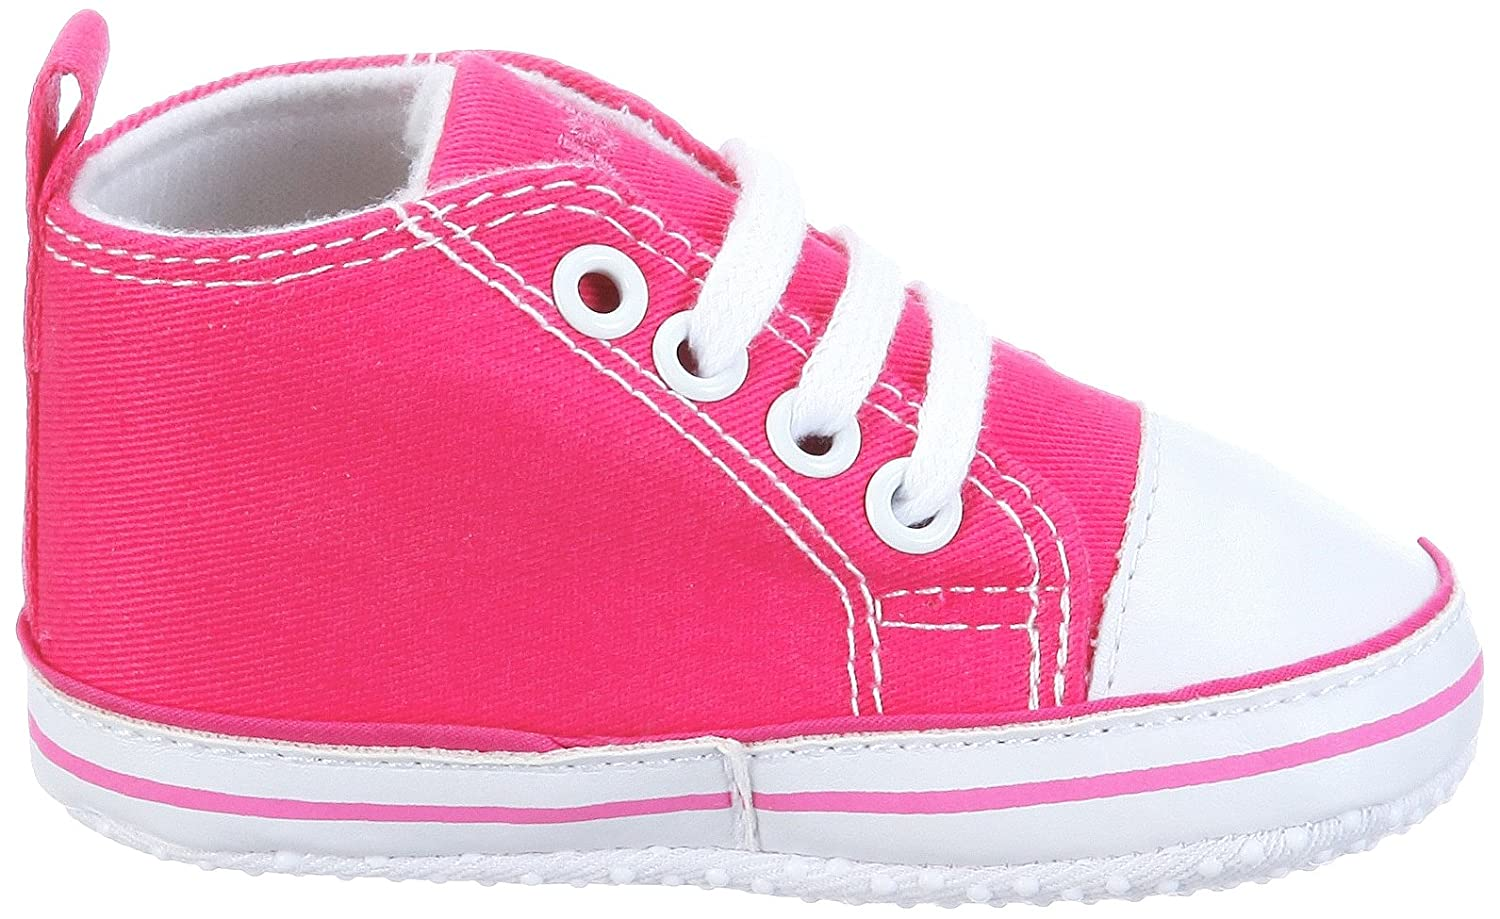 Babyshoes Booties Playshoes Unisex Baby Canvas Toddler Sneaker